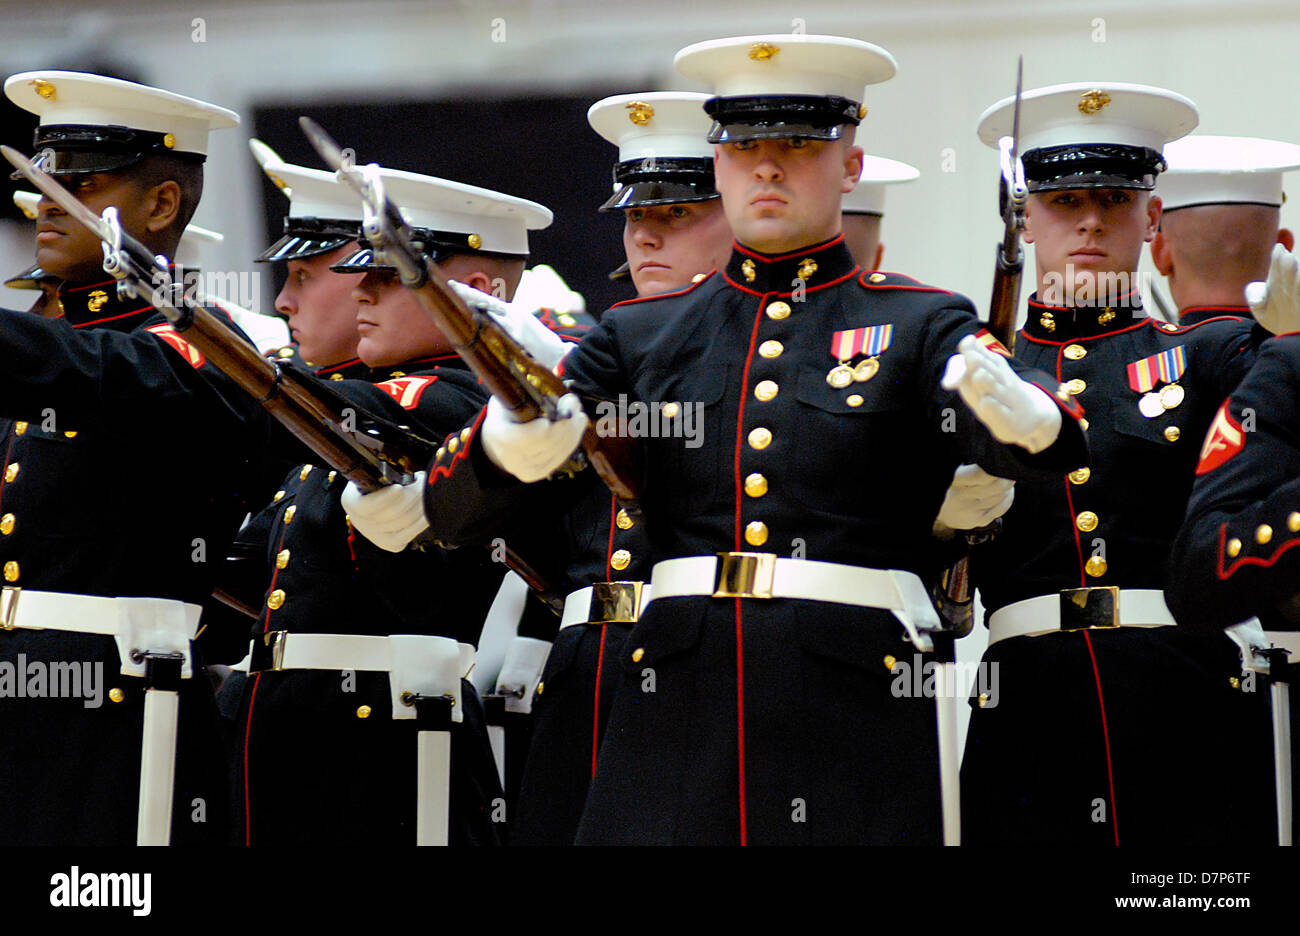 Colorado, U.S. May 11, 2013: The U.S. Marine Corps' elite Silent Drill Brigade perform following the Opening Ceremonies Stock Photo